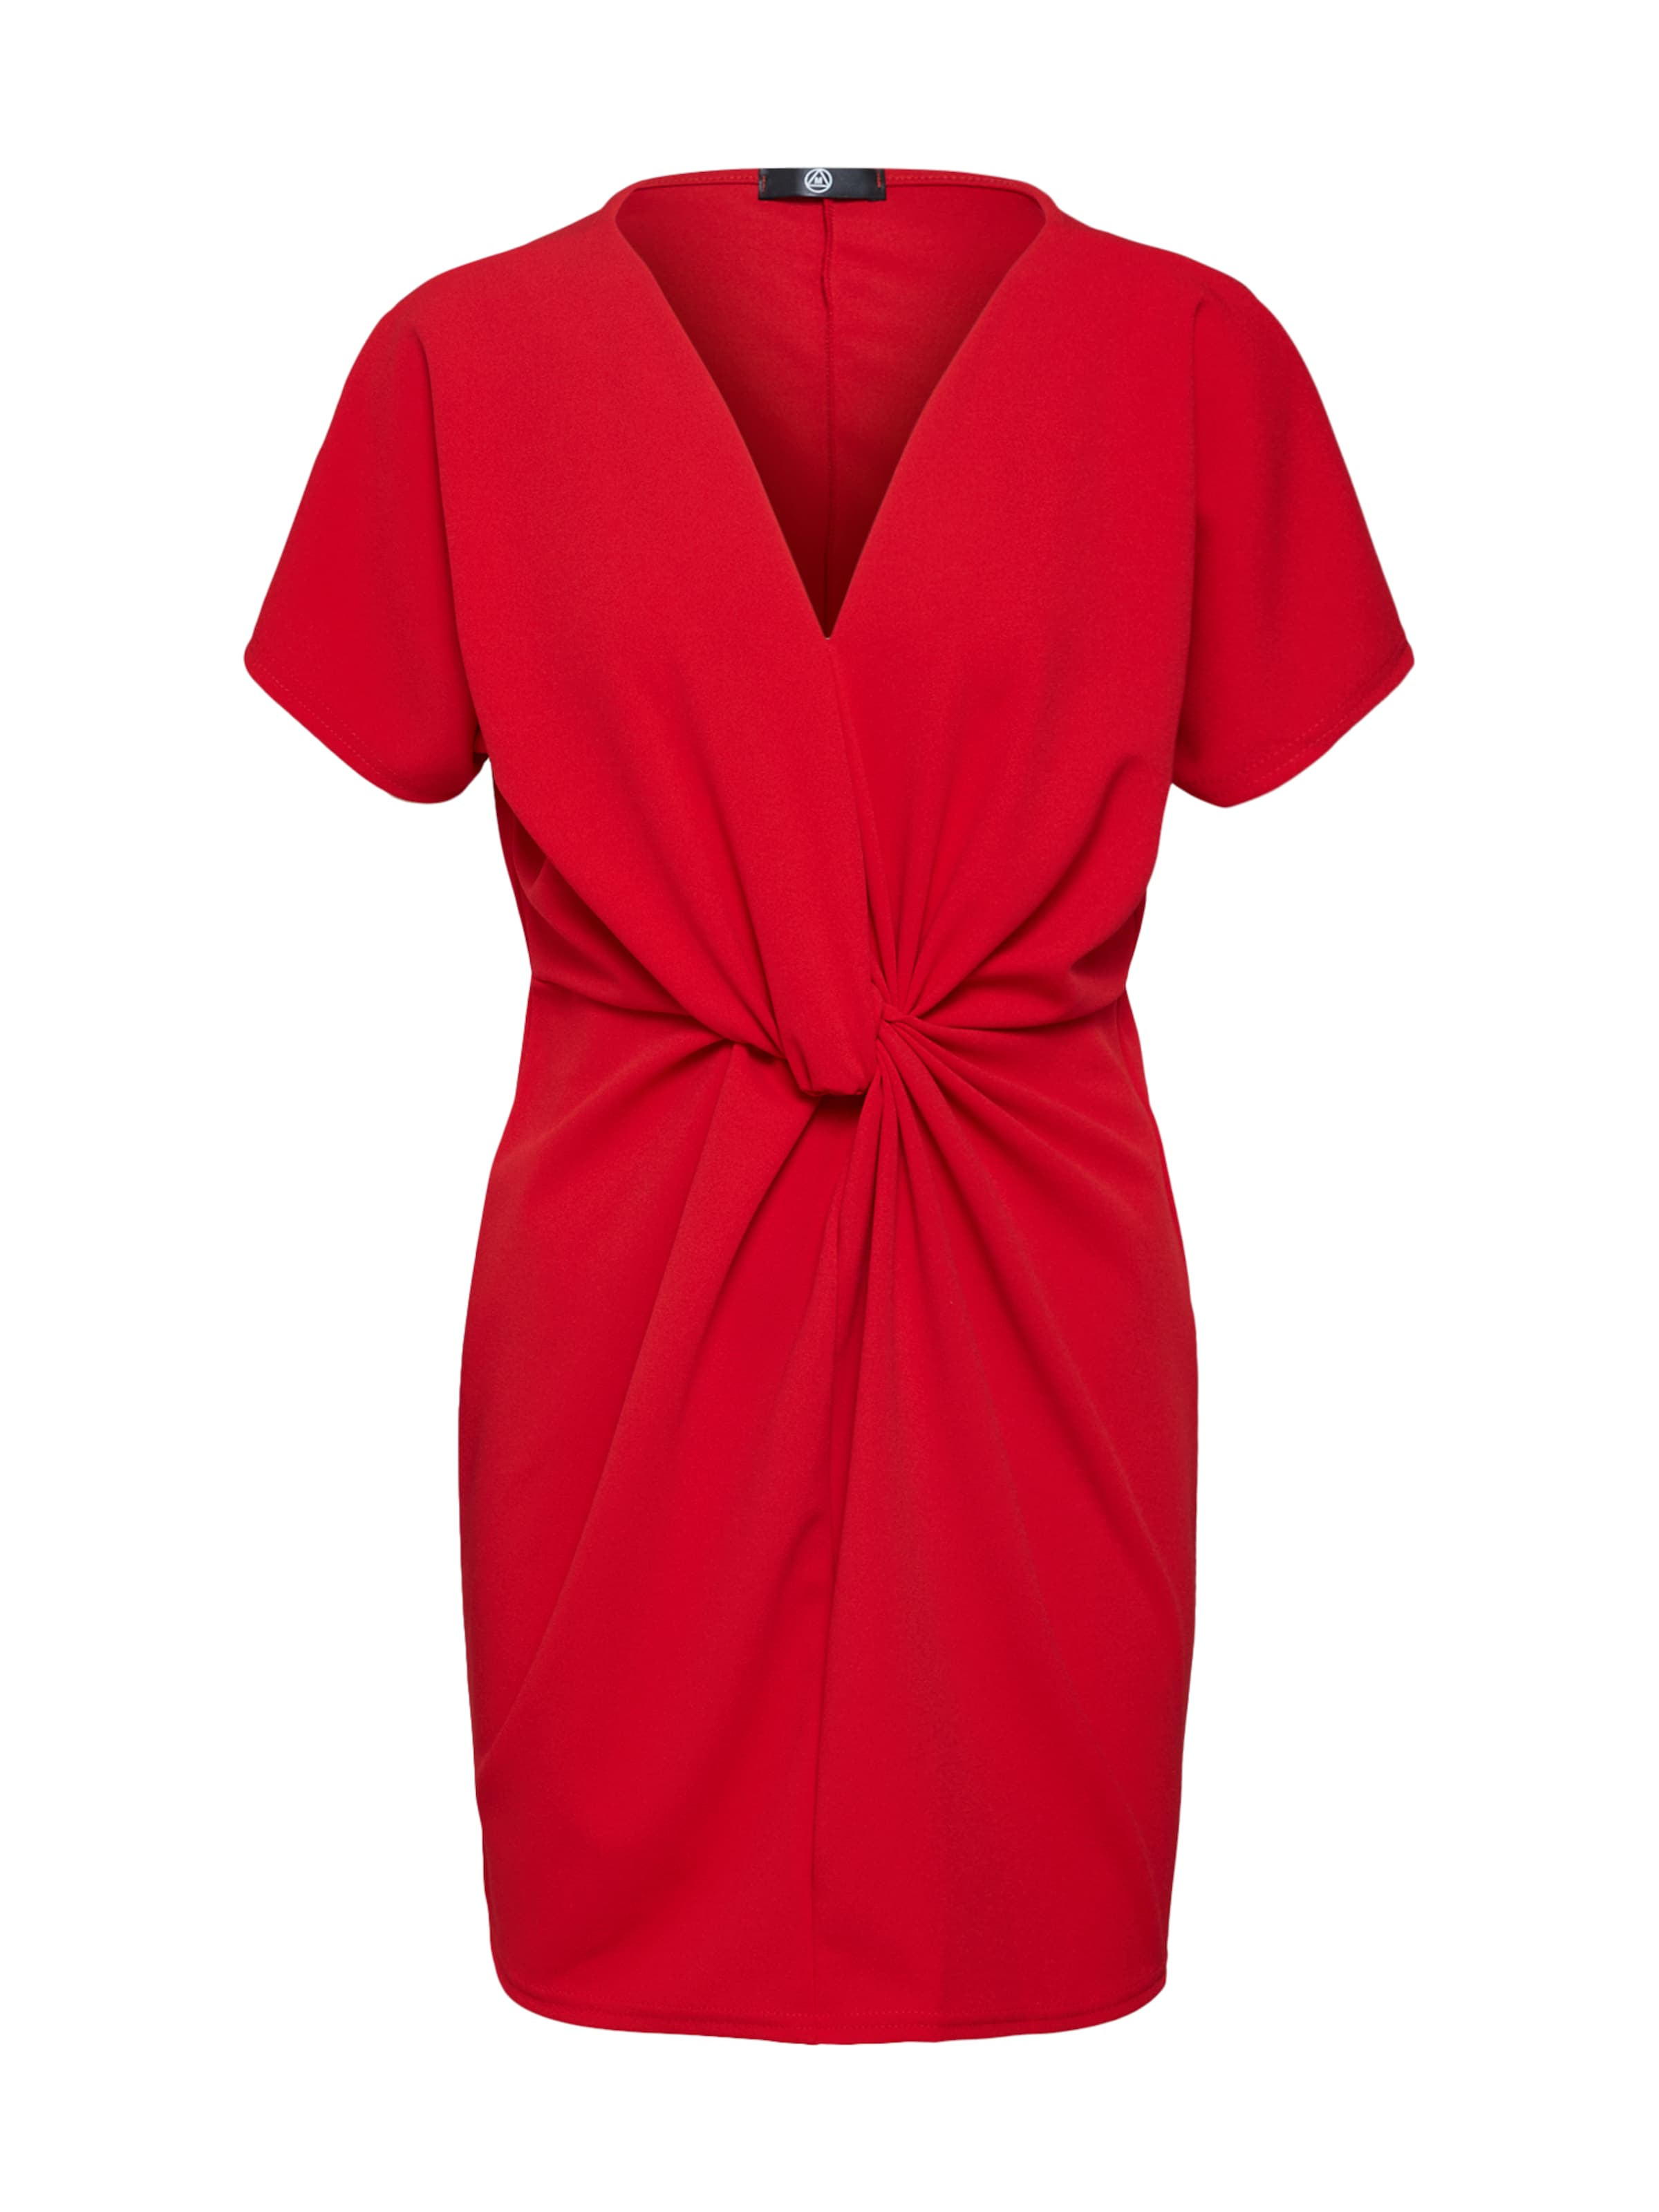 Rouge Robe Shift 'knot Missguided Front En Dress' Aq4jL53R